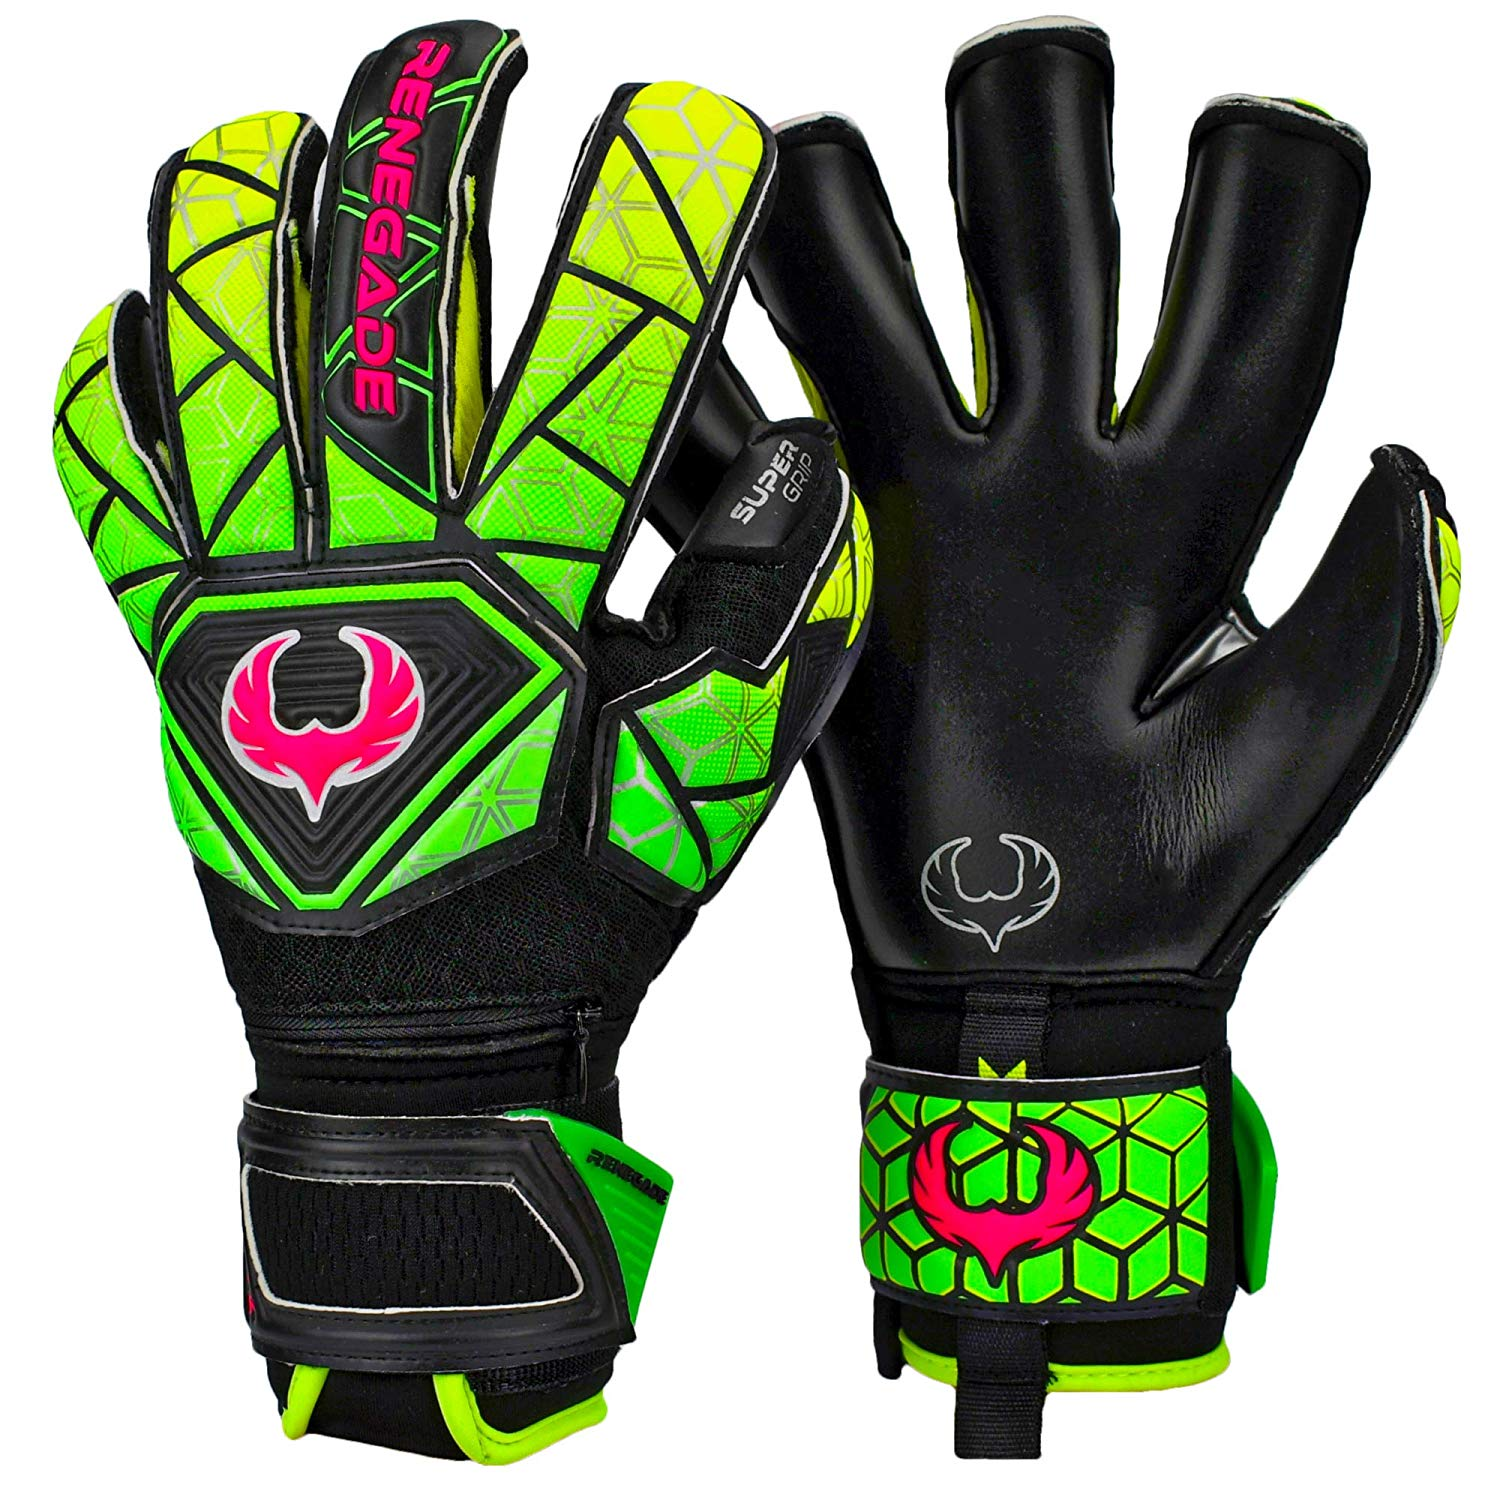 Best Goalkeeper Gloves 2019 (GK Glove Buying Guide) – Top